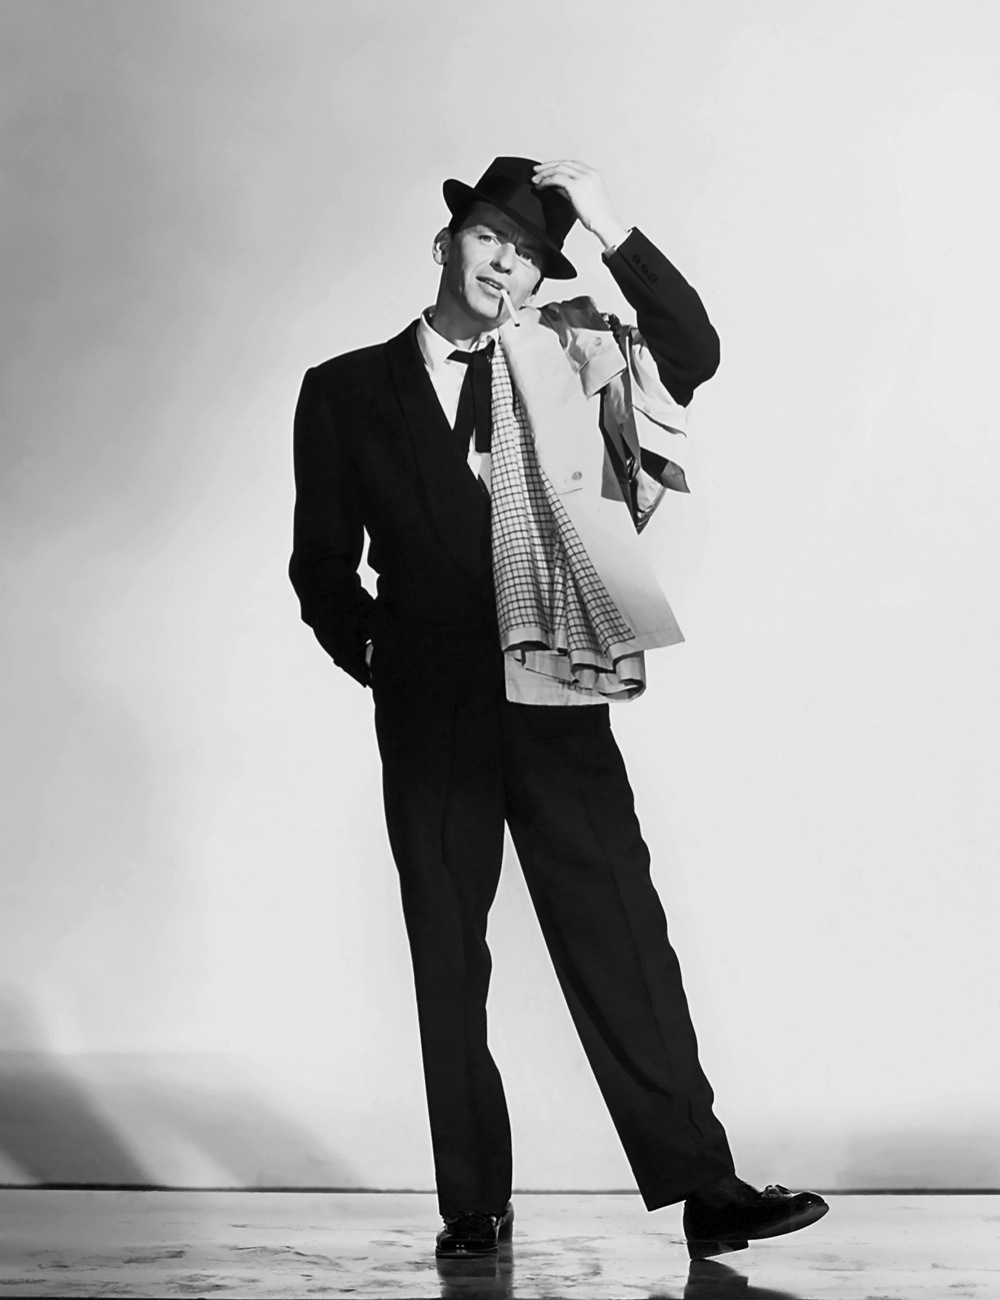 LOS ANGELES - 1957:  Singer and actor Frank Sinatra poses for a publicity still for the movie 'Pal Joey' in 1957 in Los Angeles, California. (Photo by Donaldson Collection/Getty Images) /Getty Images)